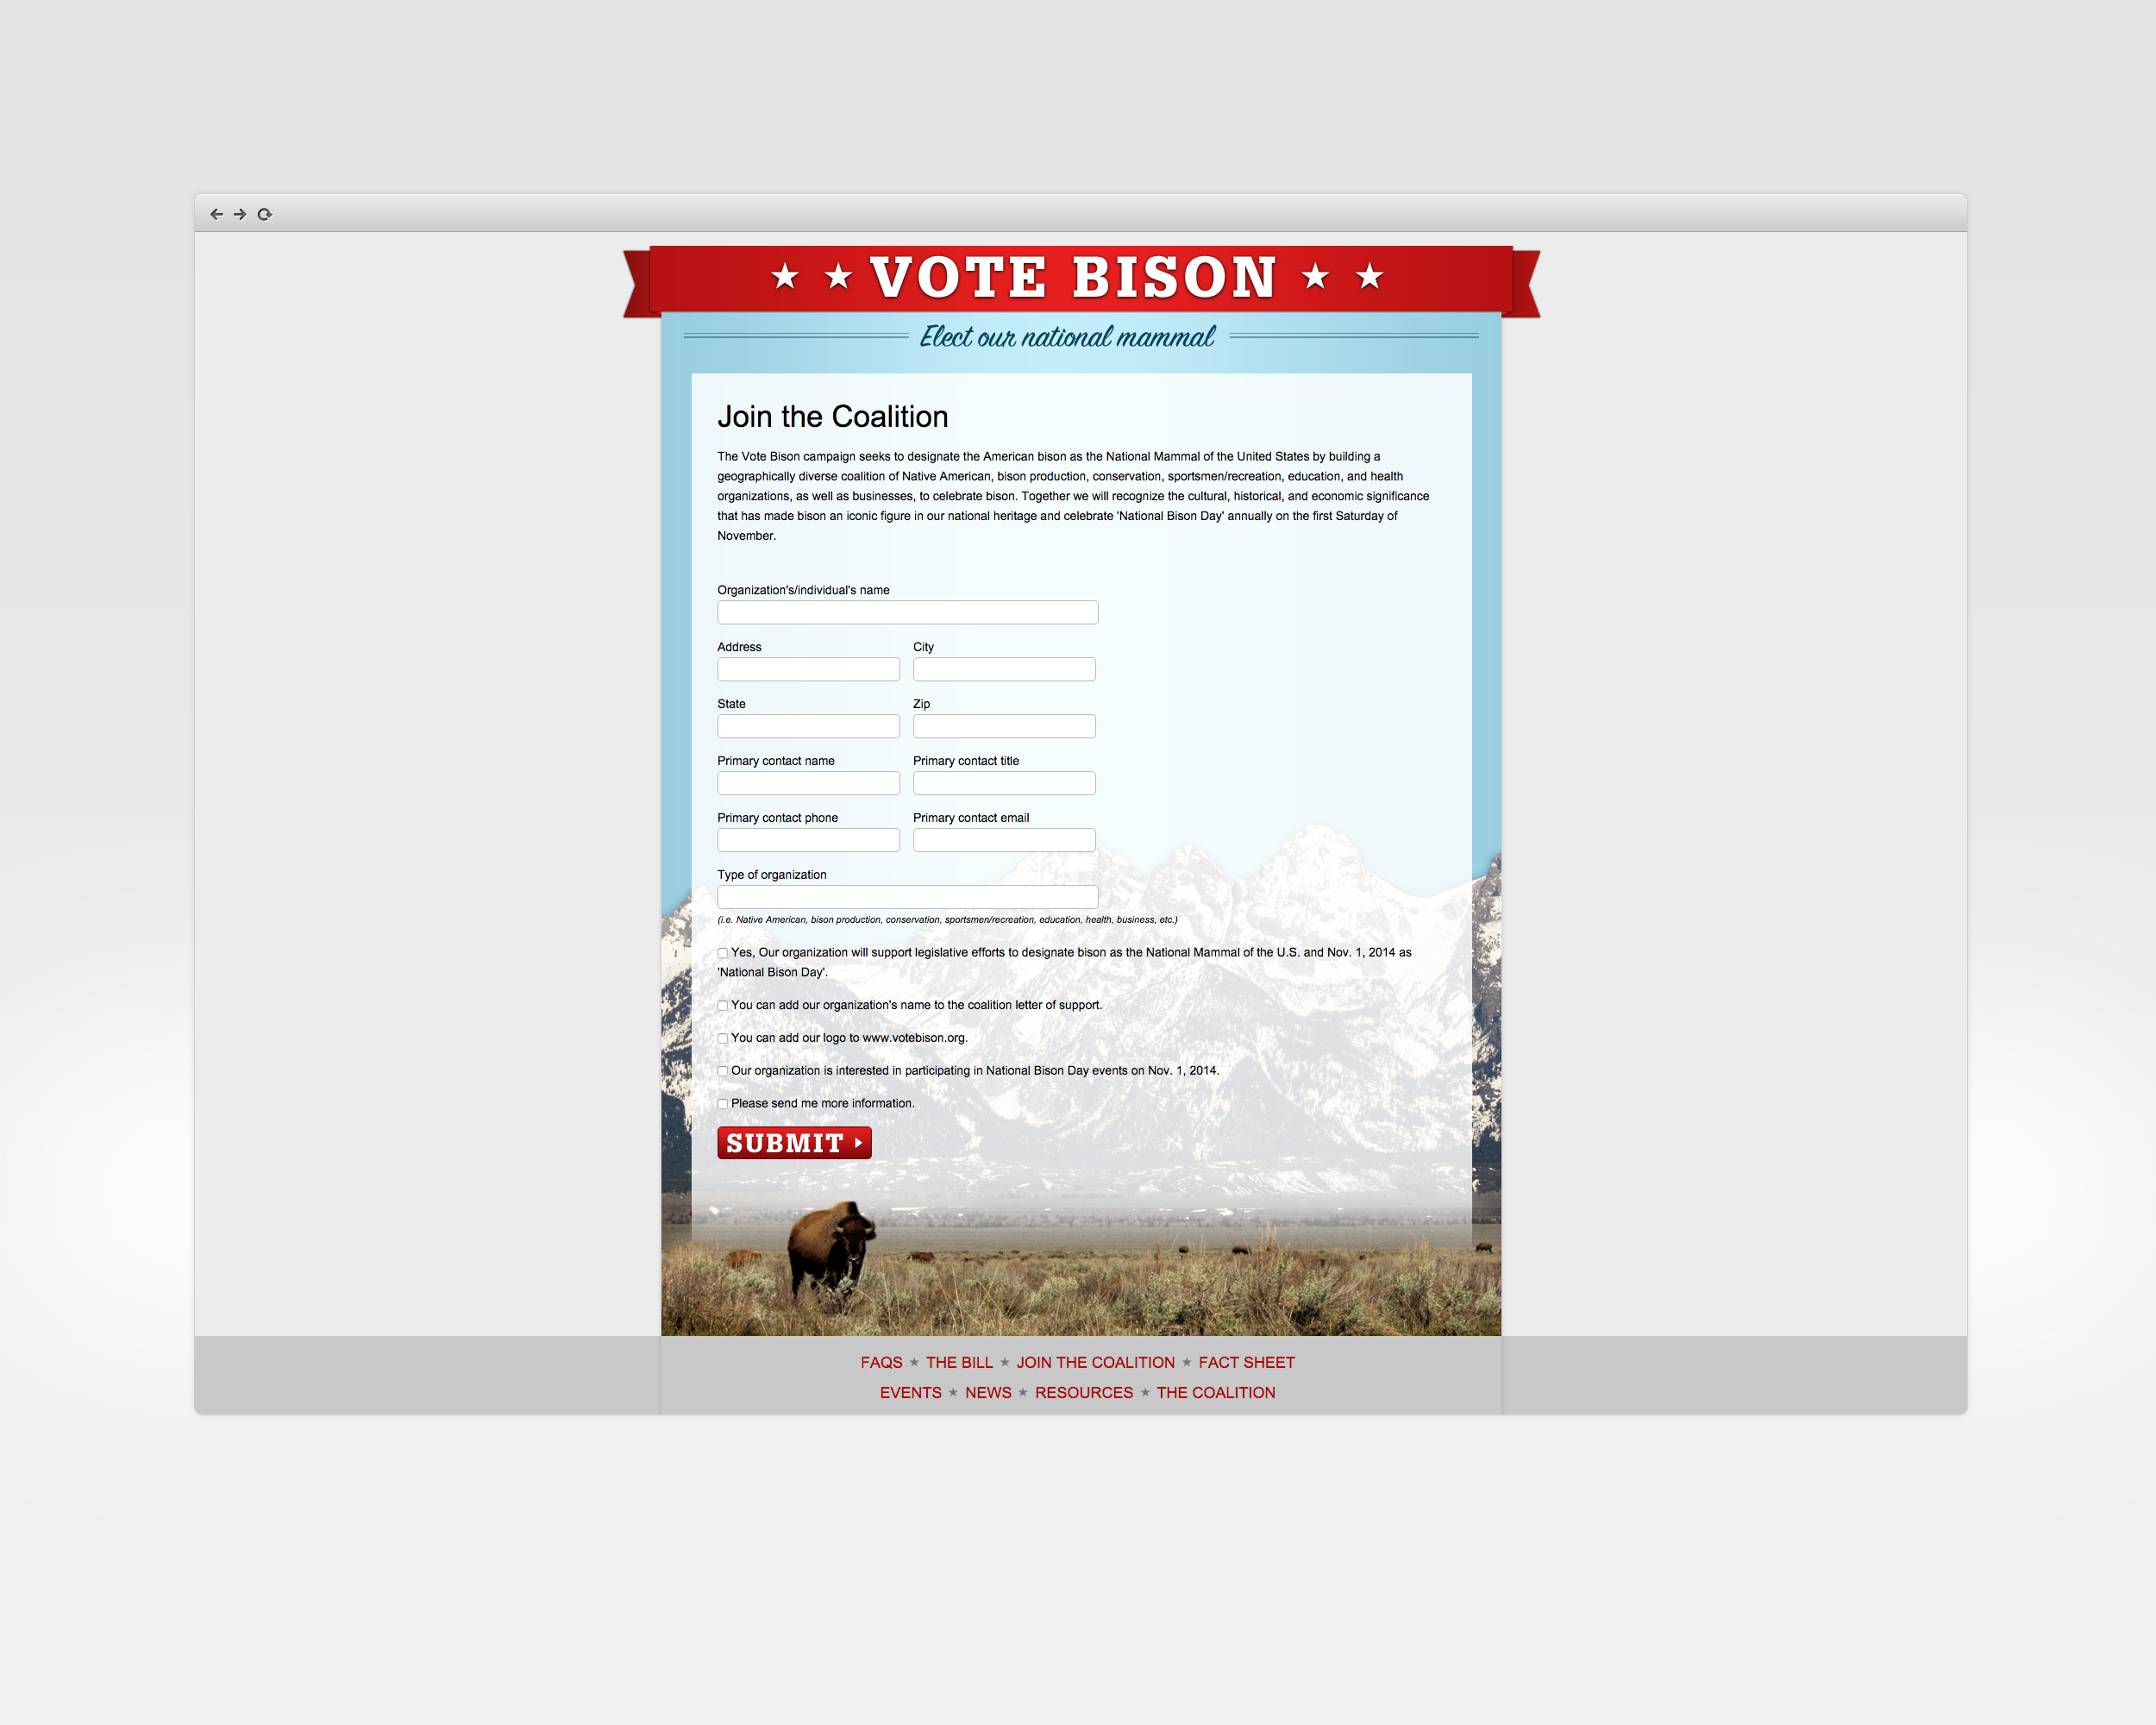 vote bison   design, ux, development   Microsite to support effortto create afederal designation ofbison as the national mammal.   View Project